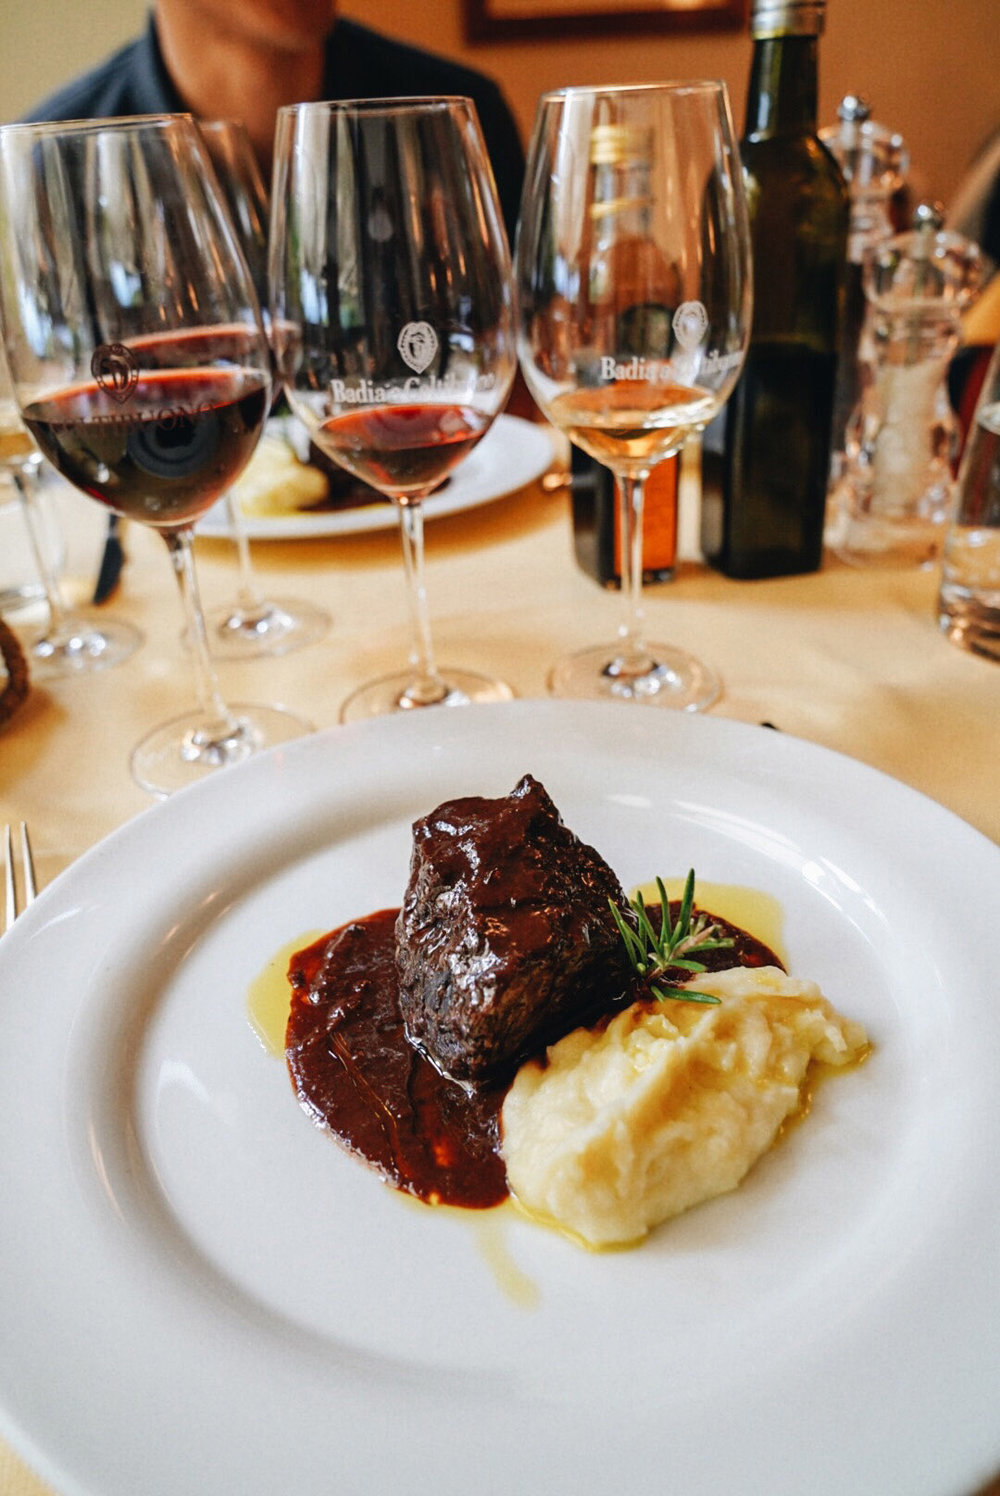 Guancia di manzo brasata in uva sangiovese, puree di patate,  Beef cheek braised in sangiovese grapes, potato puree